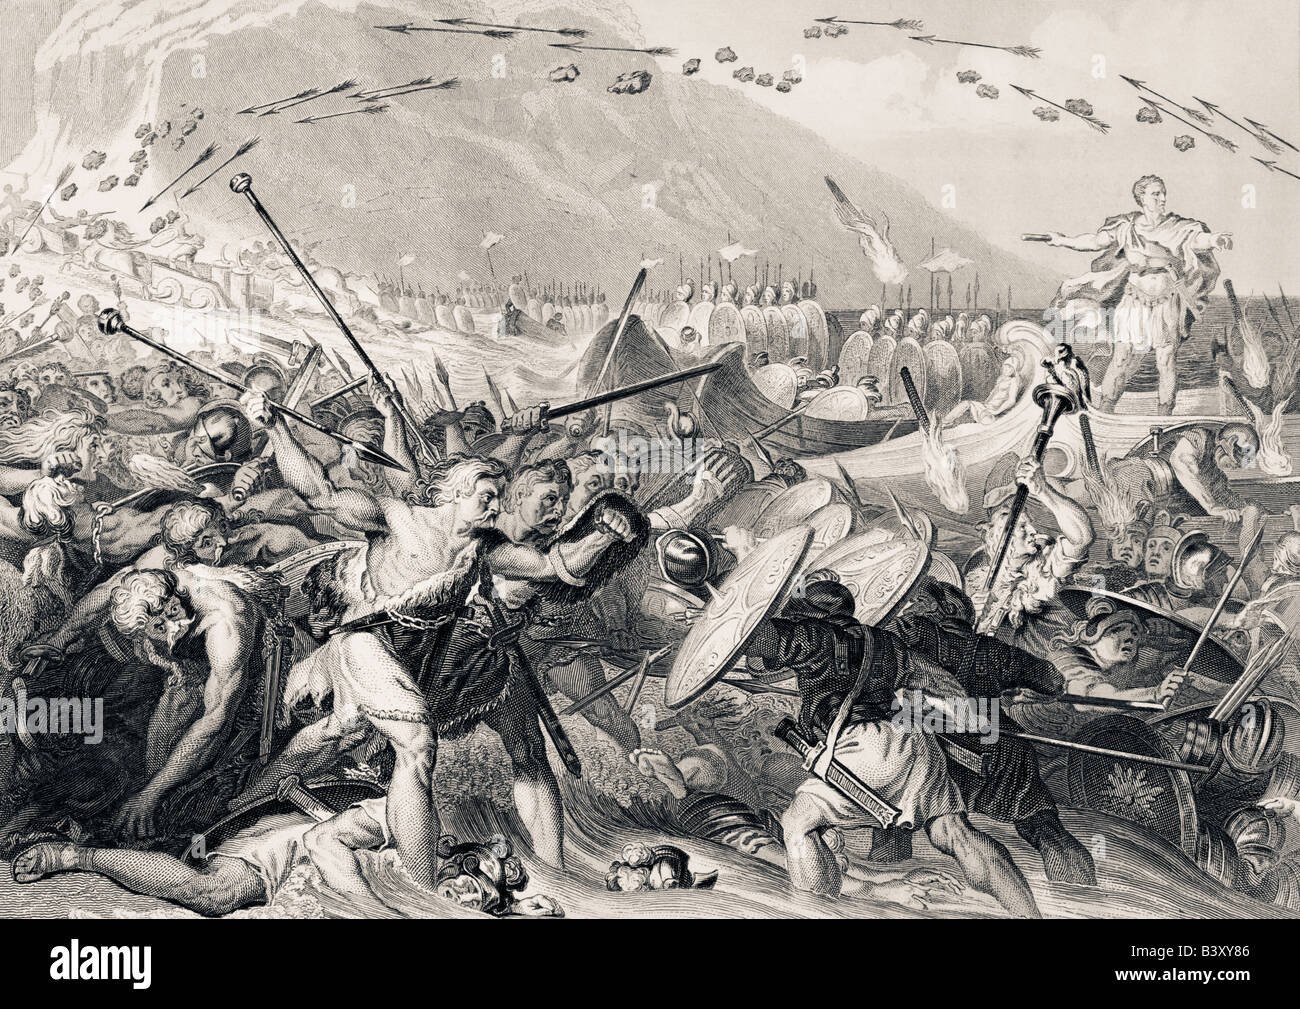 Julius Caesar lands in Britain 55 BC. - Stock Image